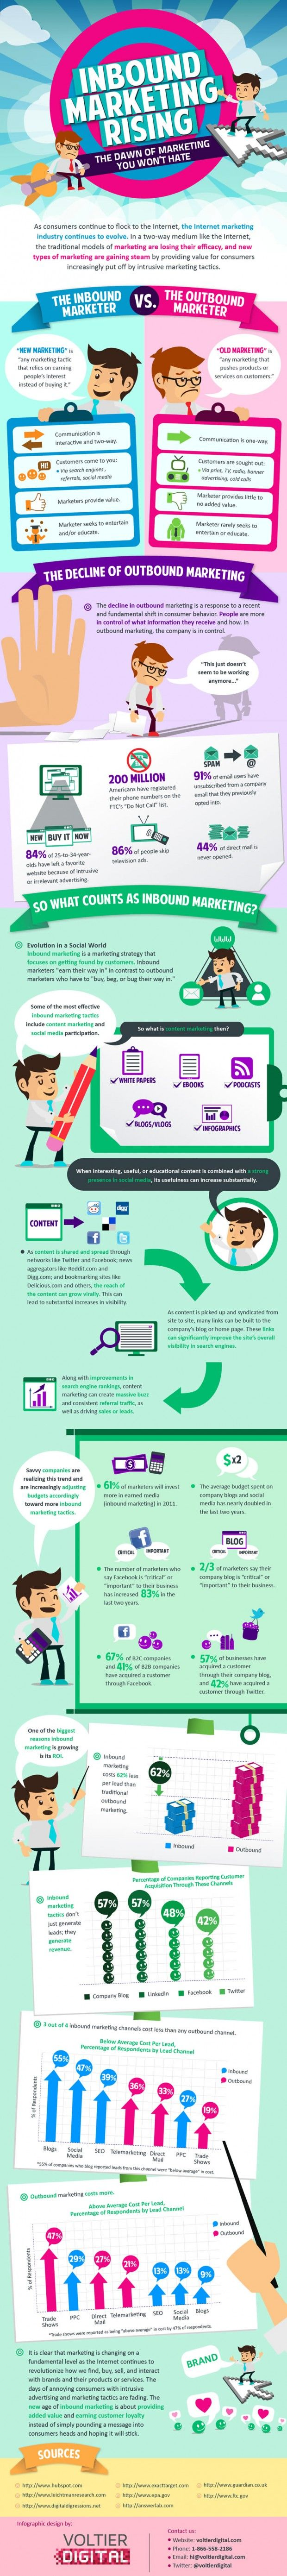 Why Your Business Should Choose Inbound Marketing [Infographic] #Infographics #SEO #Marketing  Posted July 15, 2012